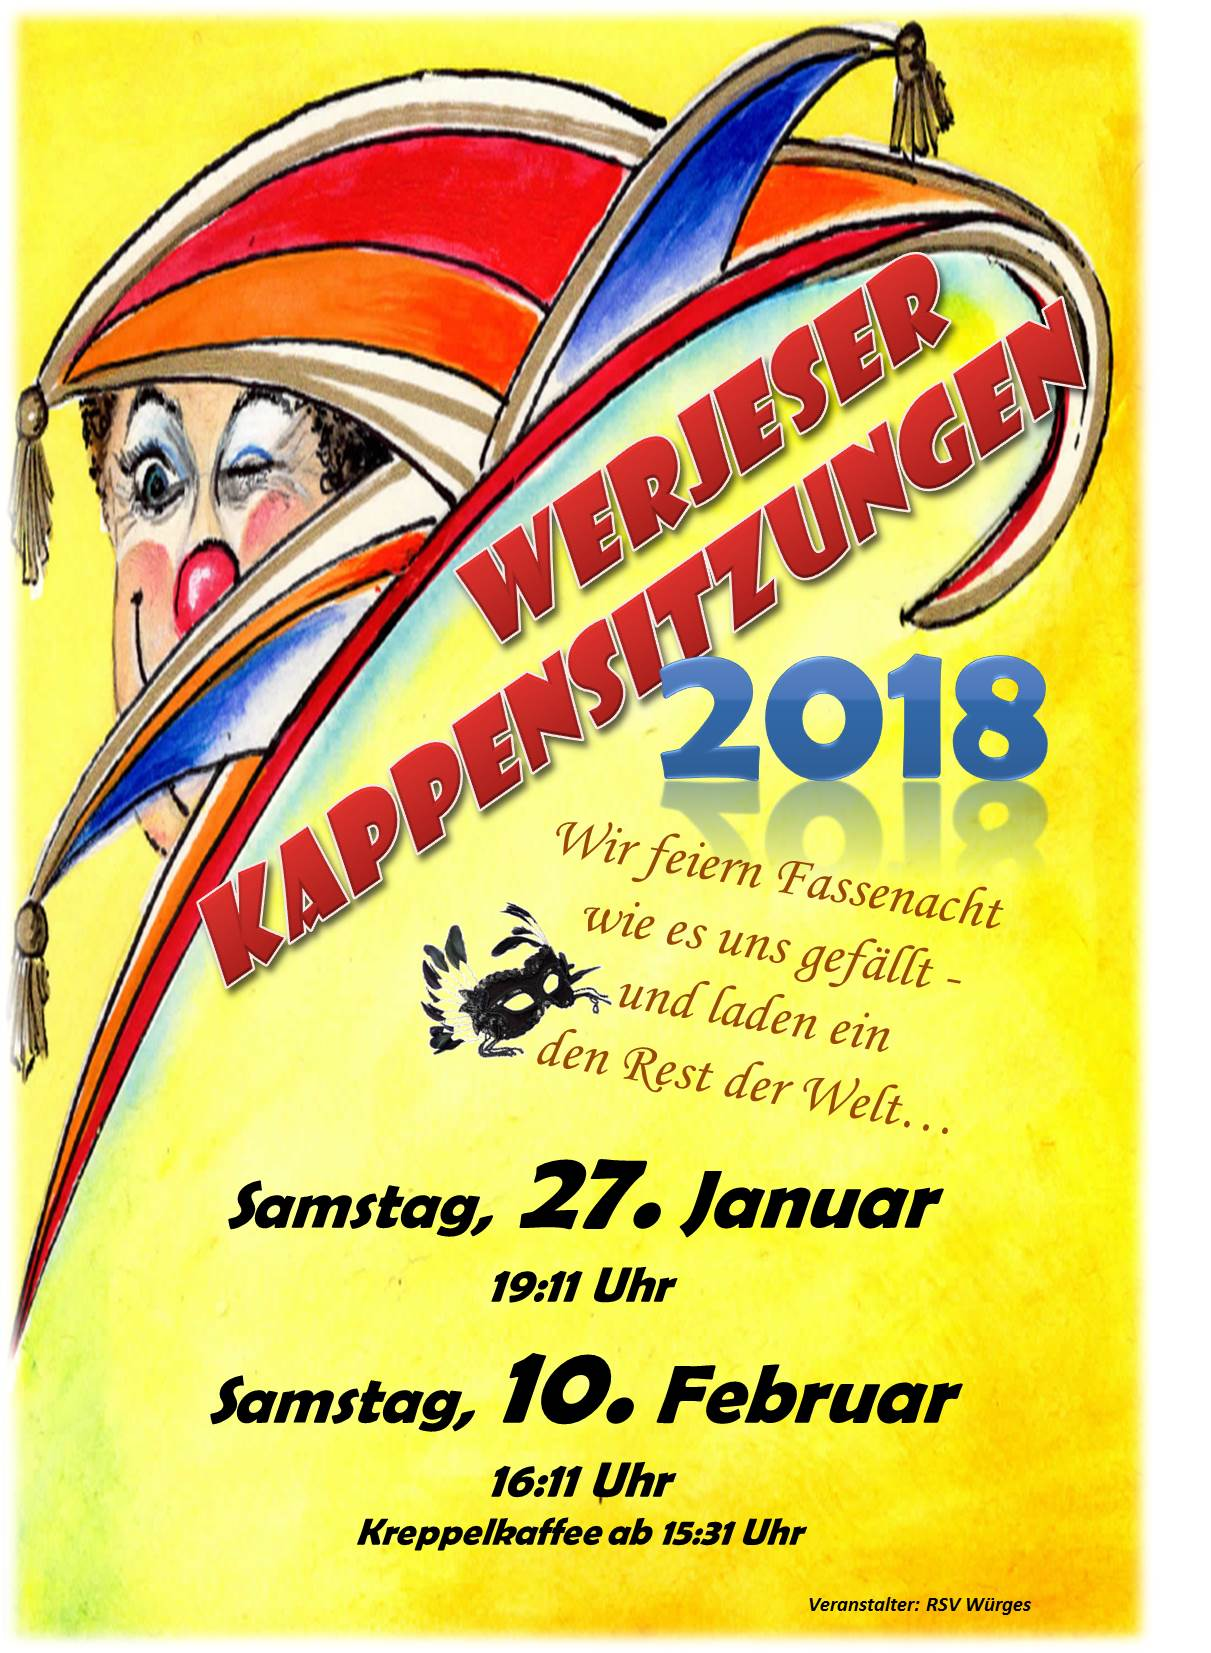 1. Kappensitzung in Bad Camberg-Würges 2018